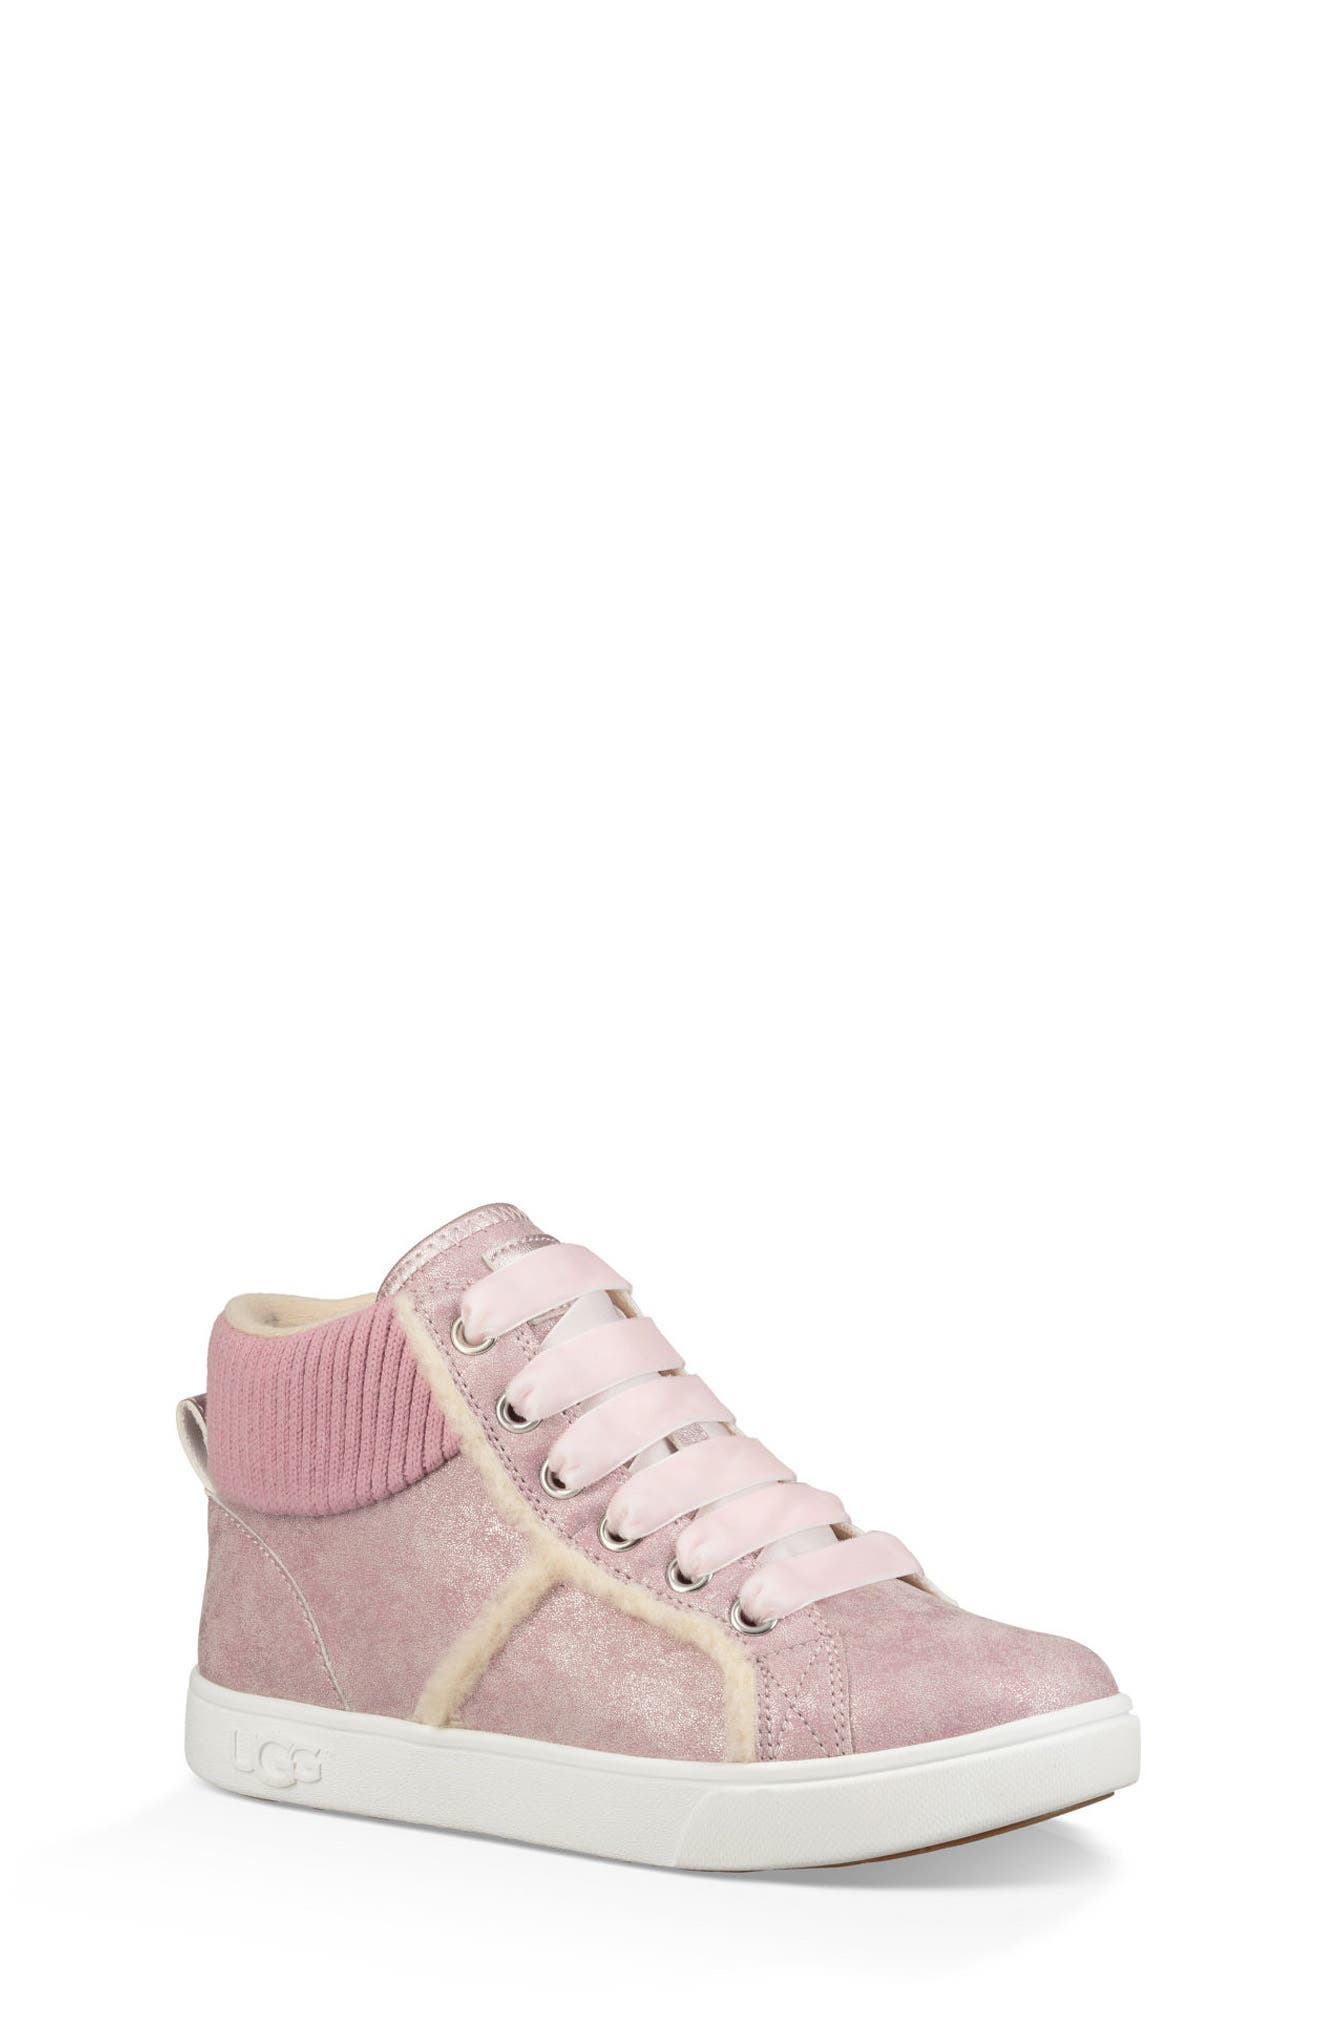 Addie Genuine Shearling High Top Sneaker,                         Main,                         color, Cameo Pink